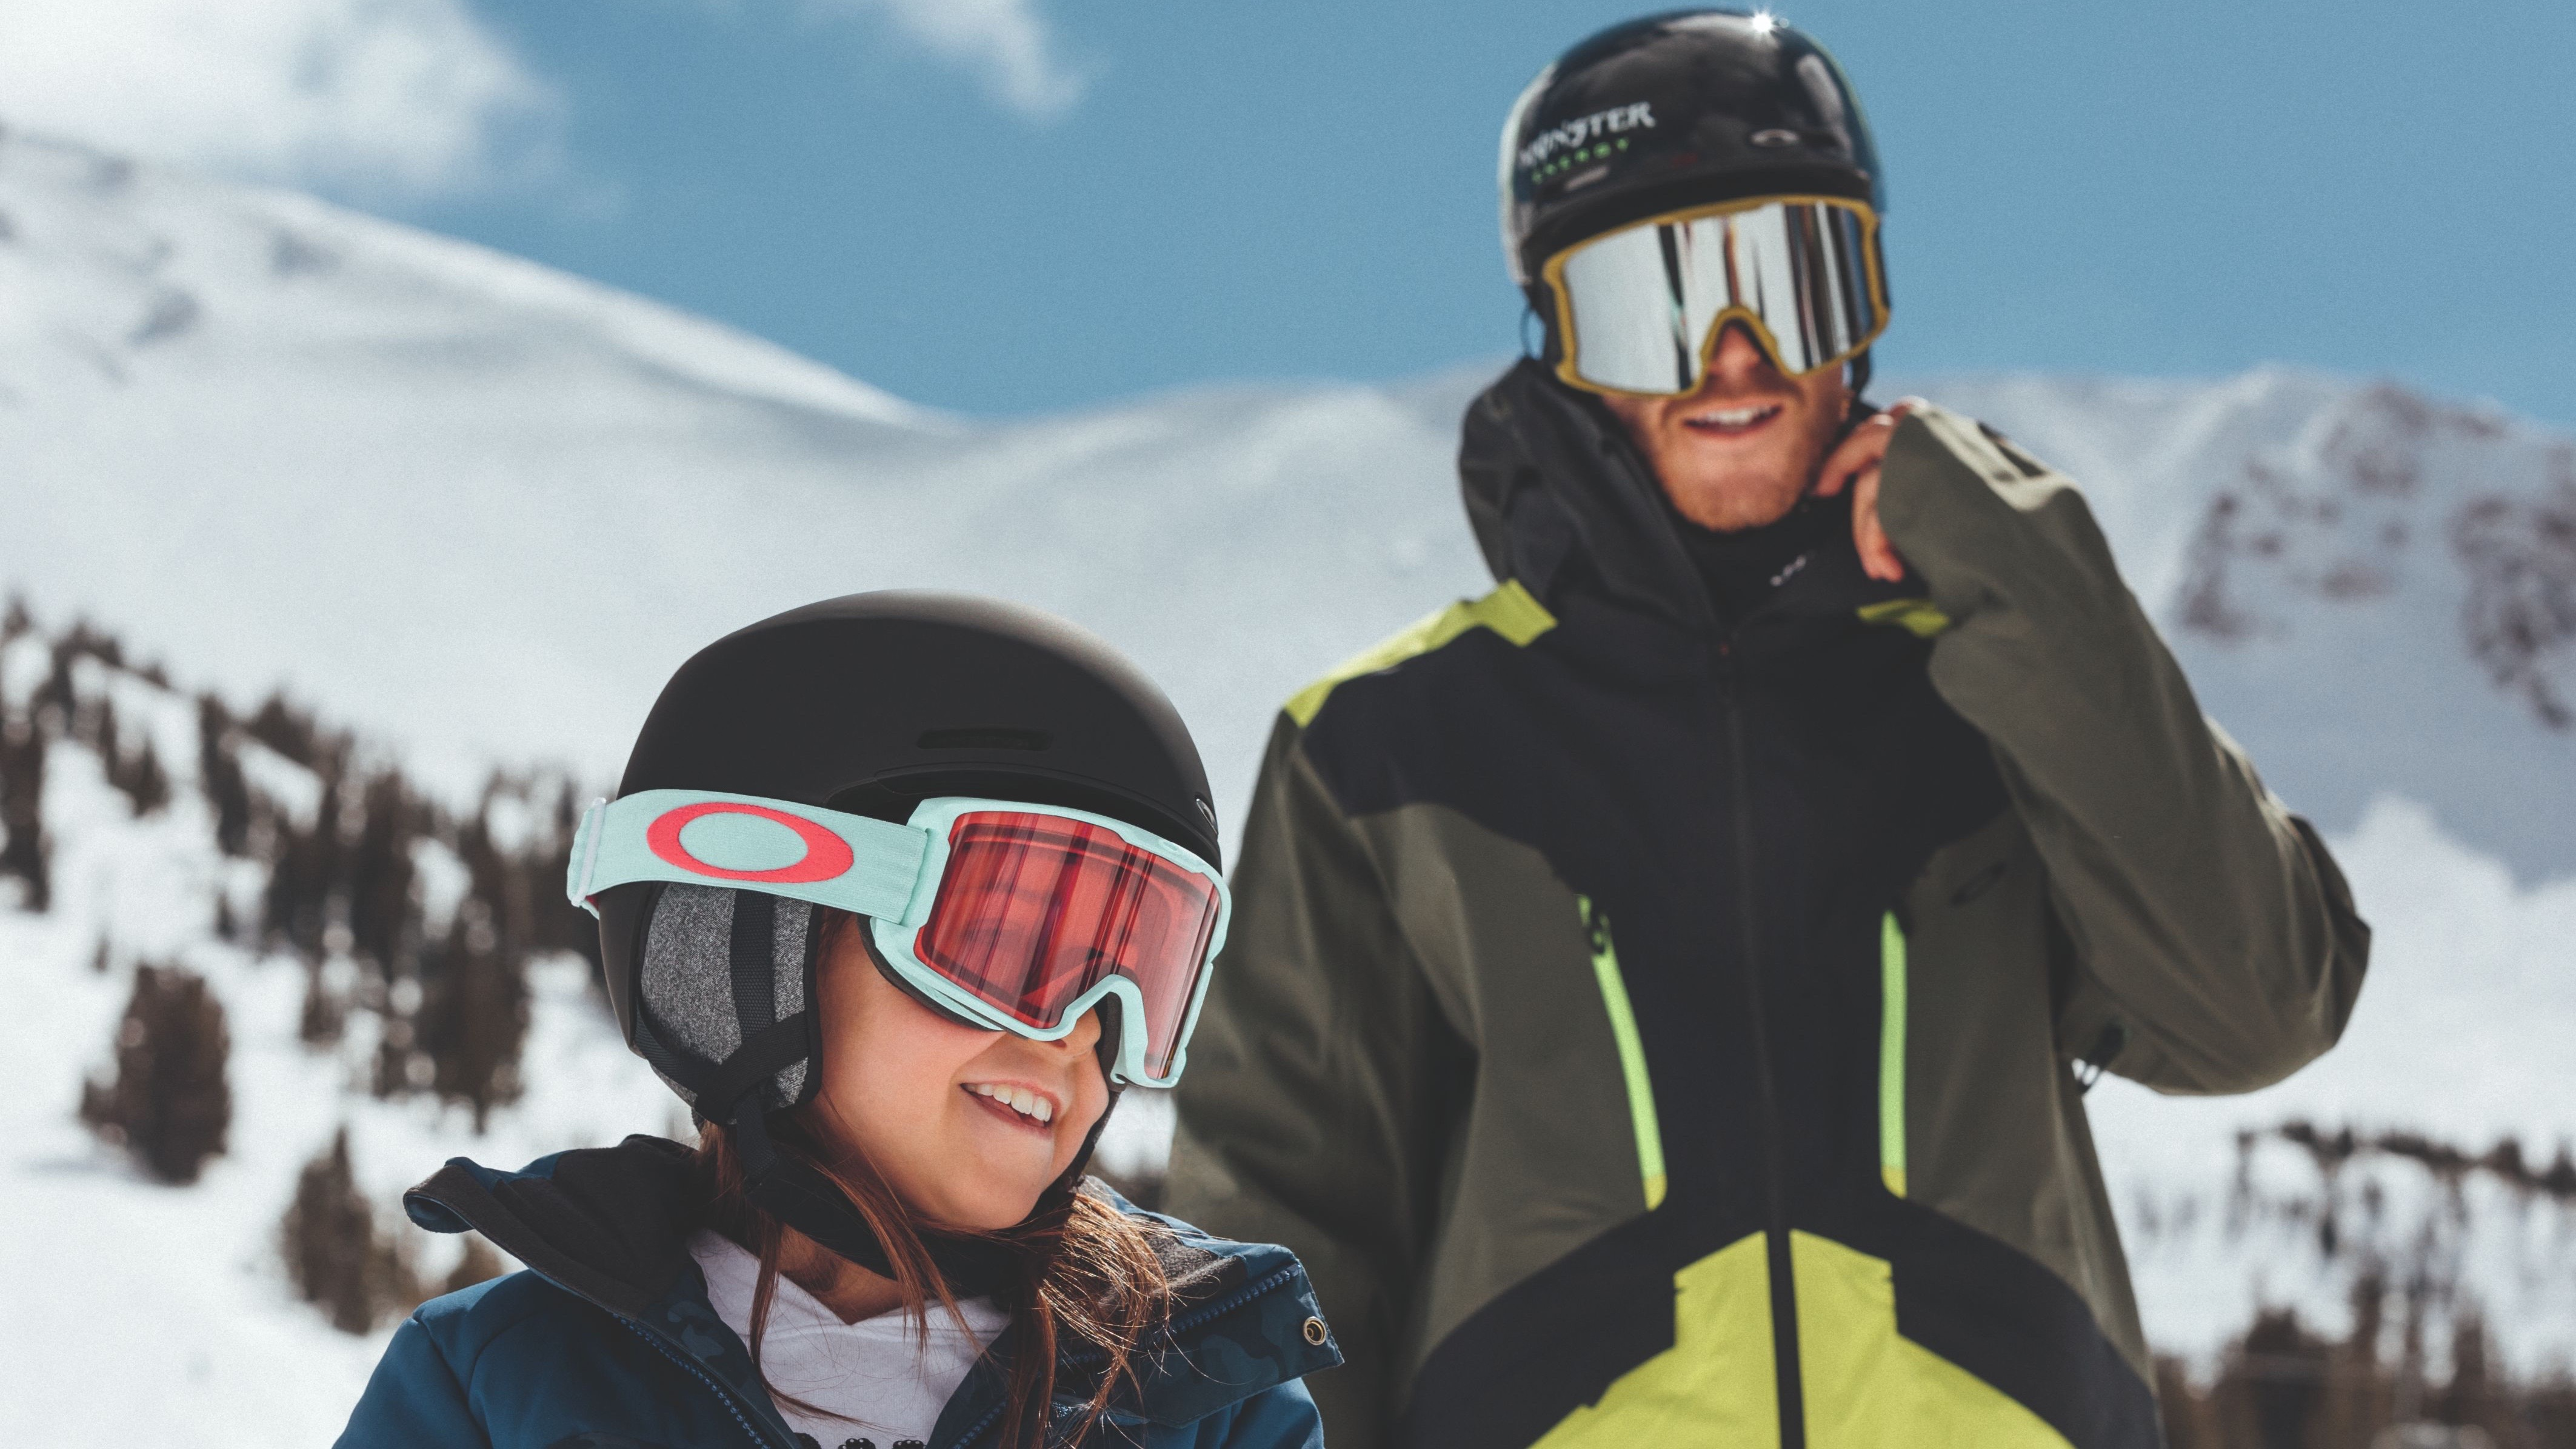 OAKLEY SNOW YOUTH COLLECTION LIFESTYLE IMAGE